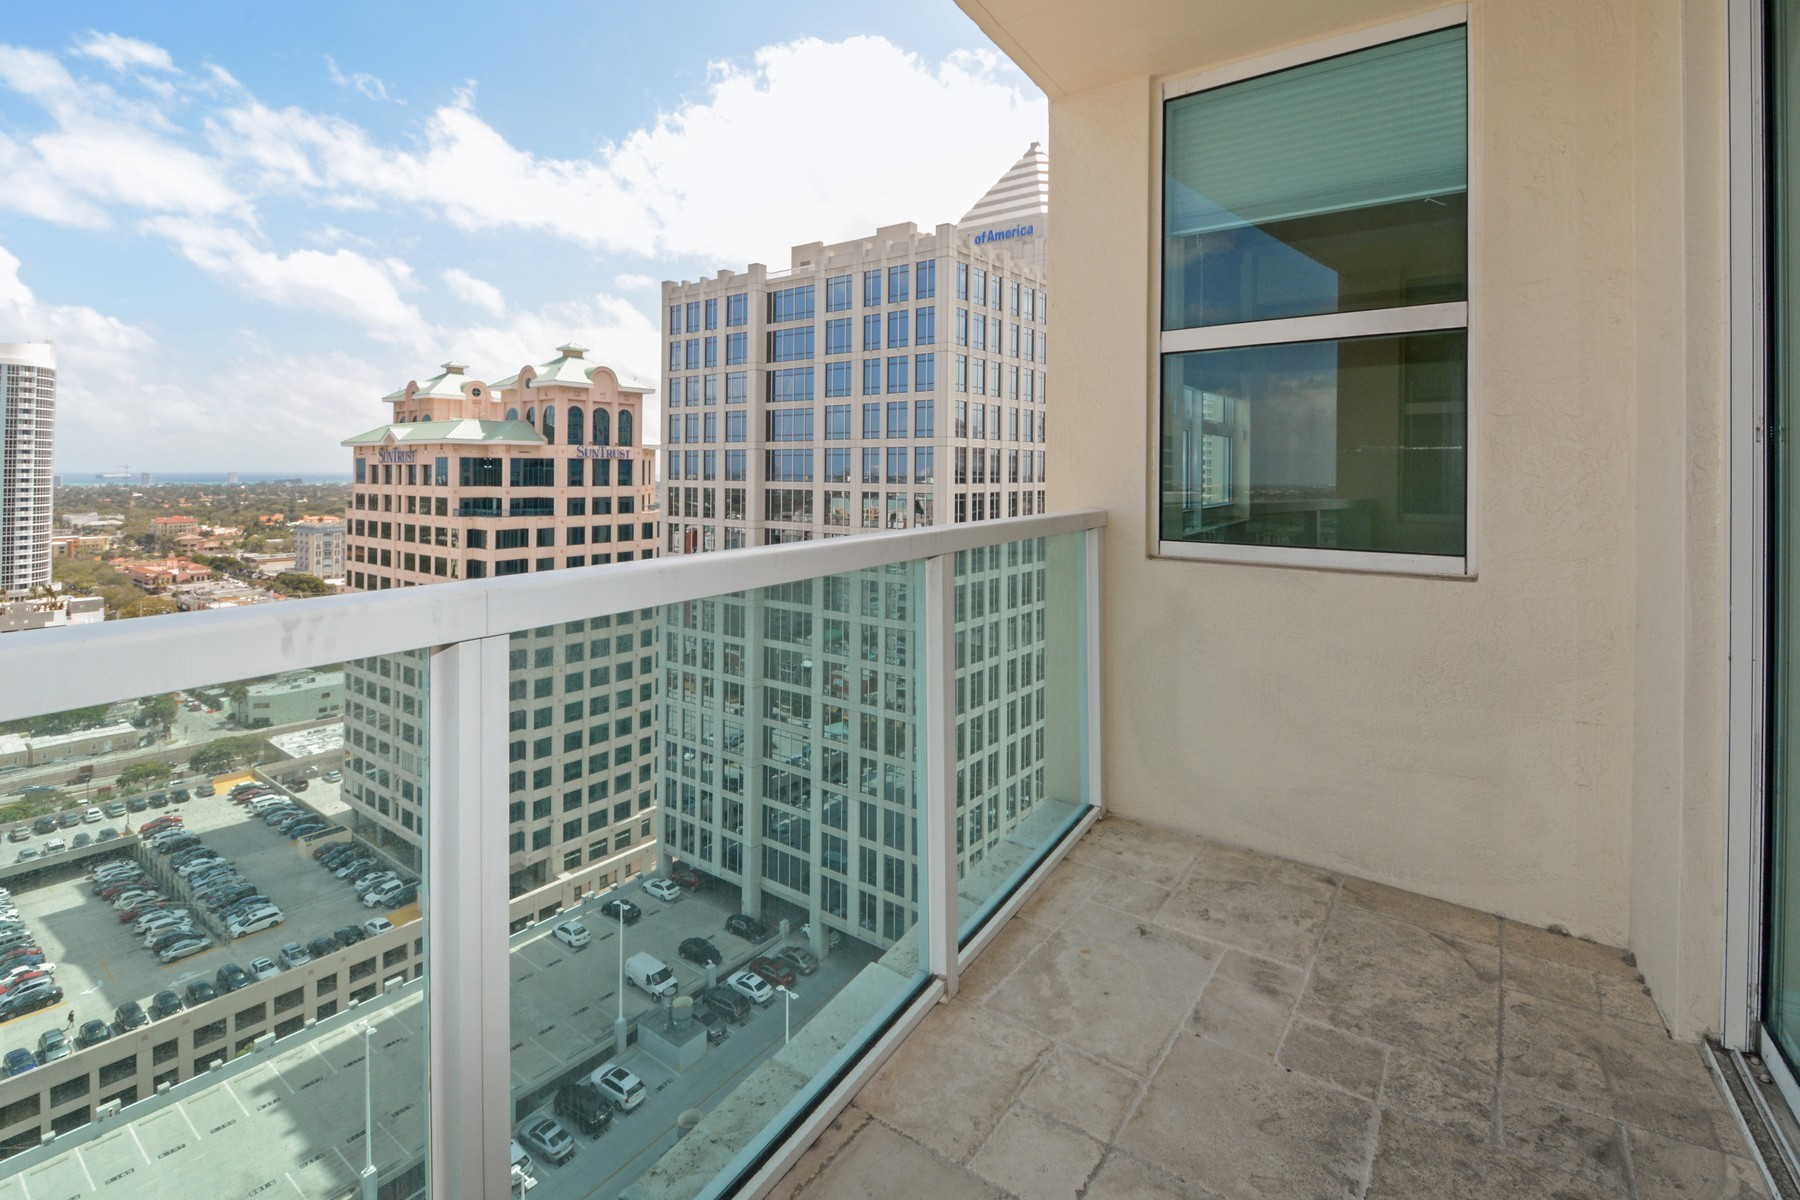 Condominium for Sale at 350 Se 2nd St #2360 350 Se 2nd St 2360 Fort Lauderdale, Florida, 33301 United States